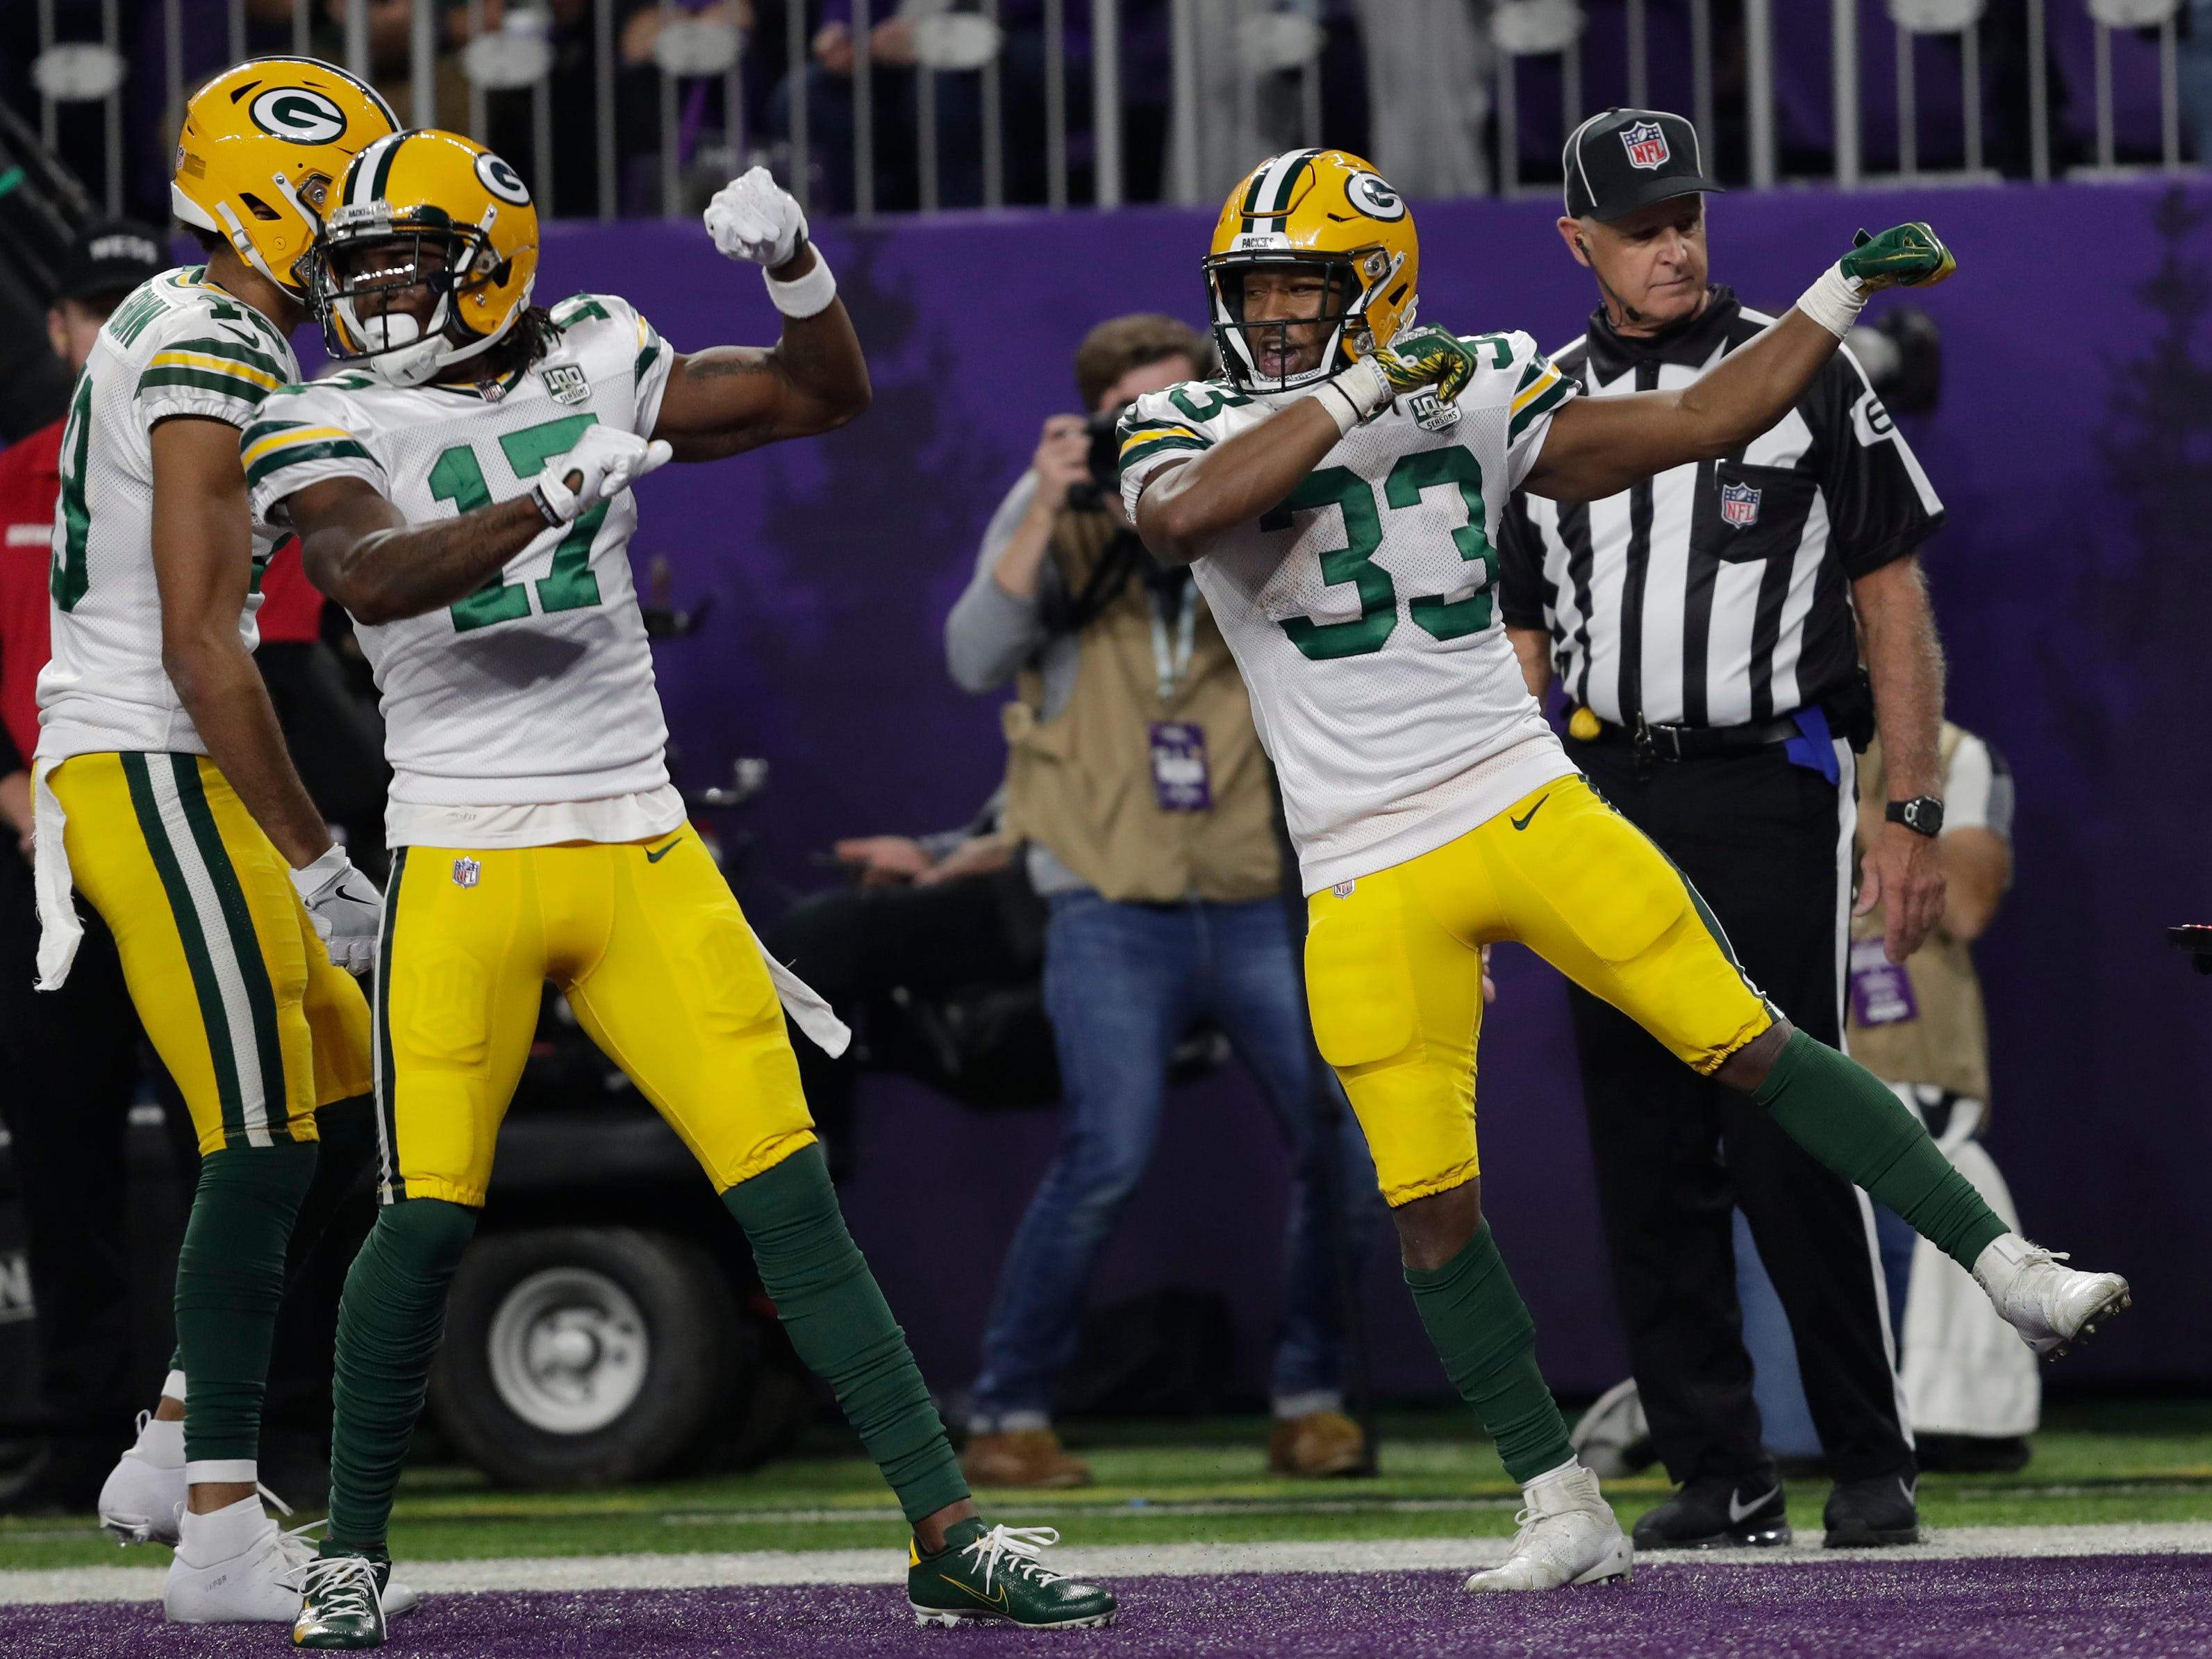 Green Bay Packers running back Aaron Jones (33) celebrates his touchdown run with wide receiver Davante Adams (17) in the second quarter during their football game Sunday, November 25, 2018, at U.S. Bank Stadium in Minneapolis, Minn. Dan Powers/USA TODAY NETWORK-Wisconsin